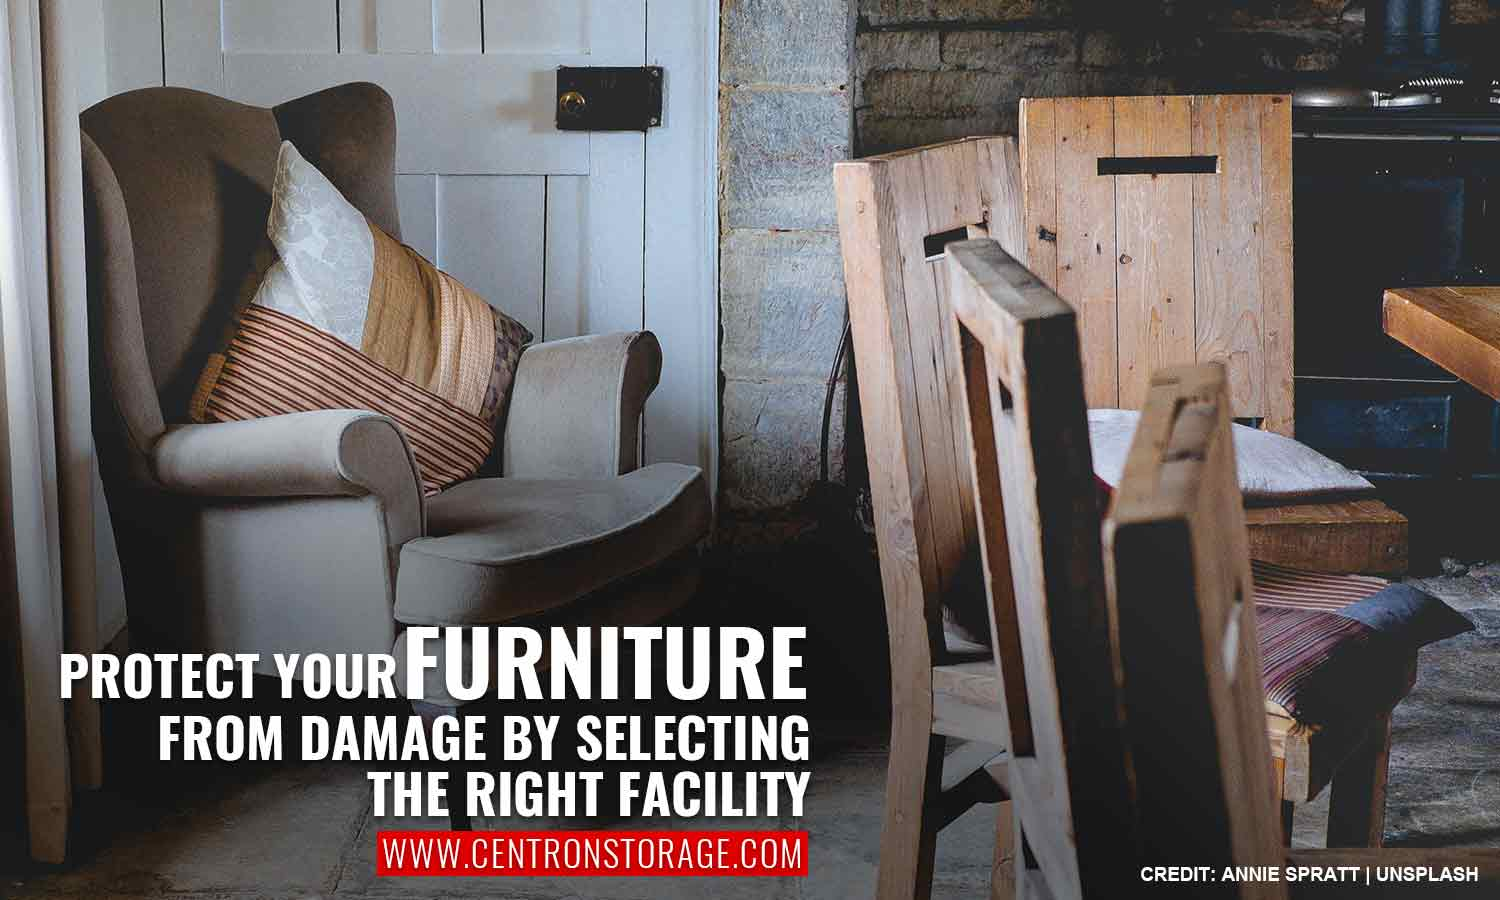 Protect your furniture from damage by selecting the right facility